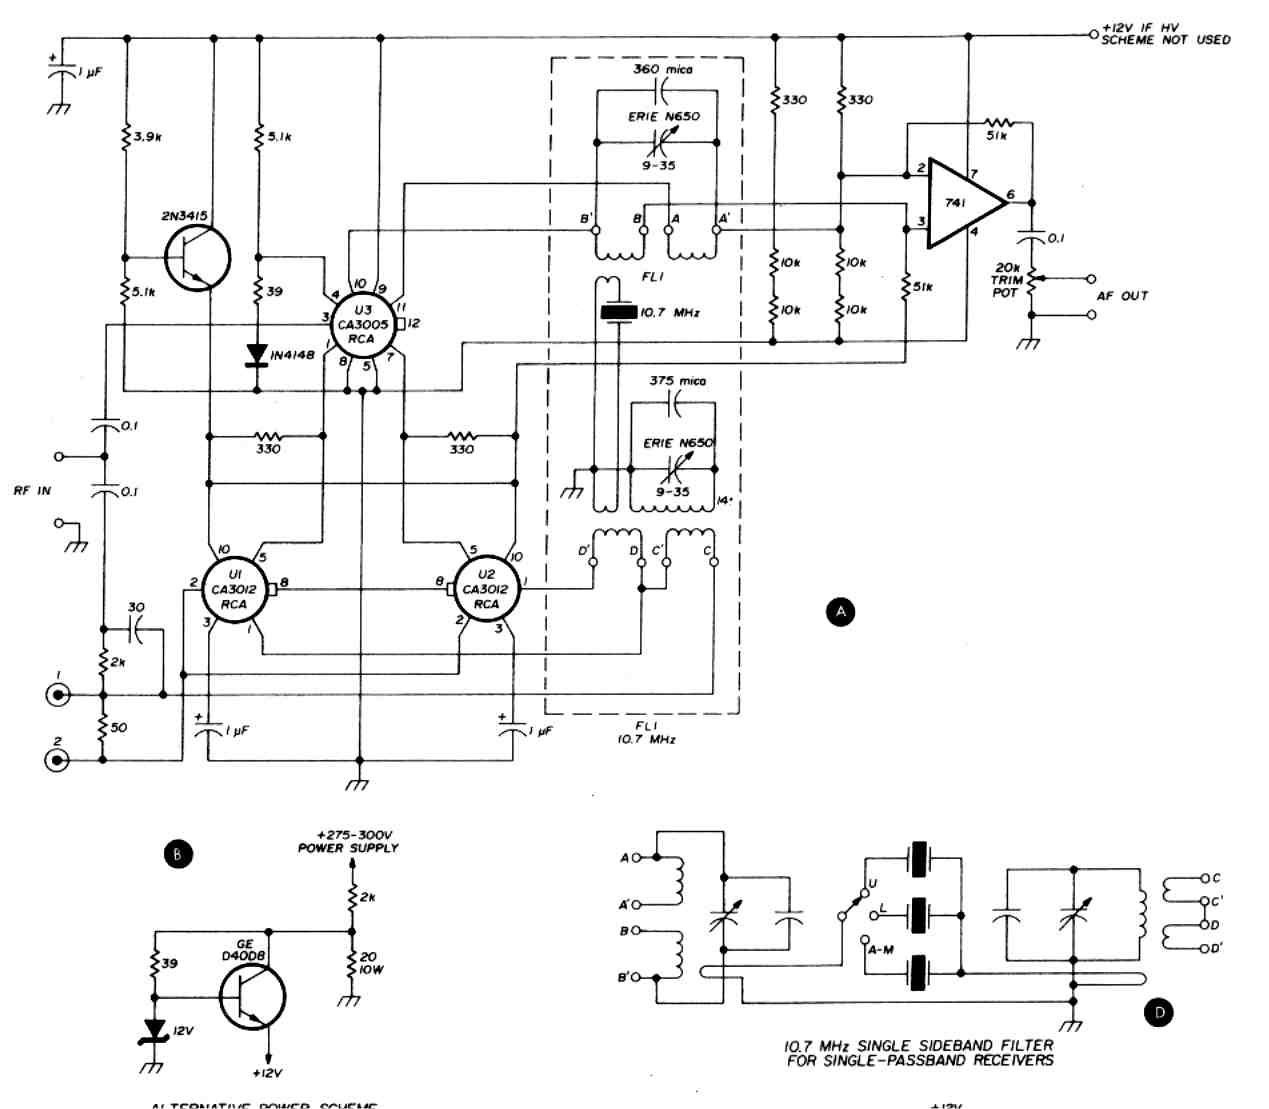 search results page 1  about  u0026 39 bfo u0026 39   searching circuits at